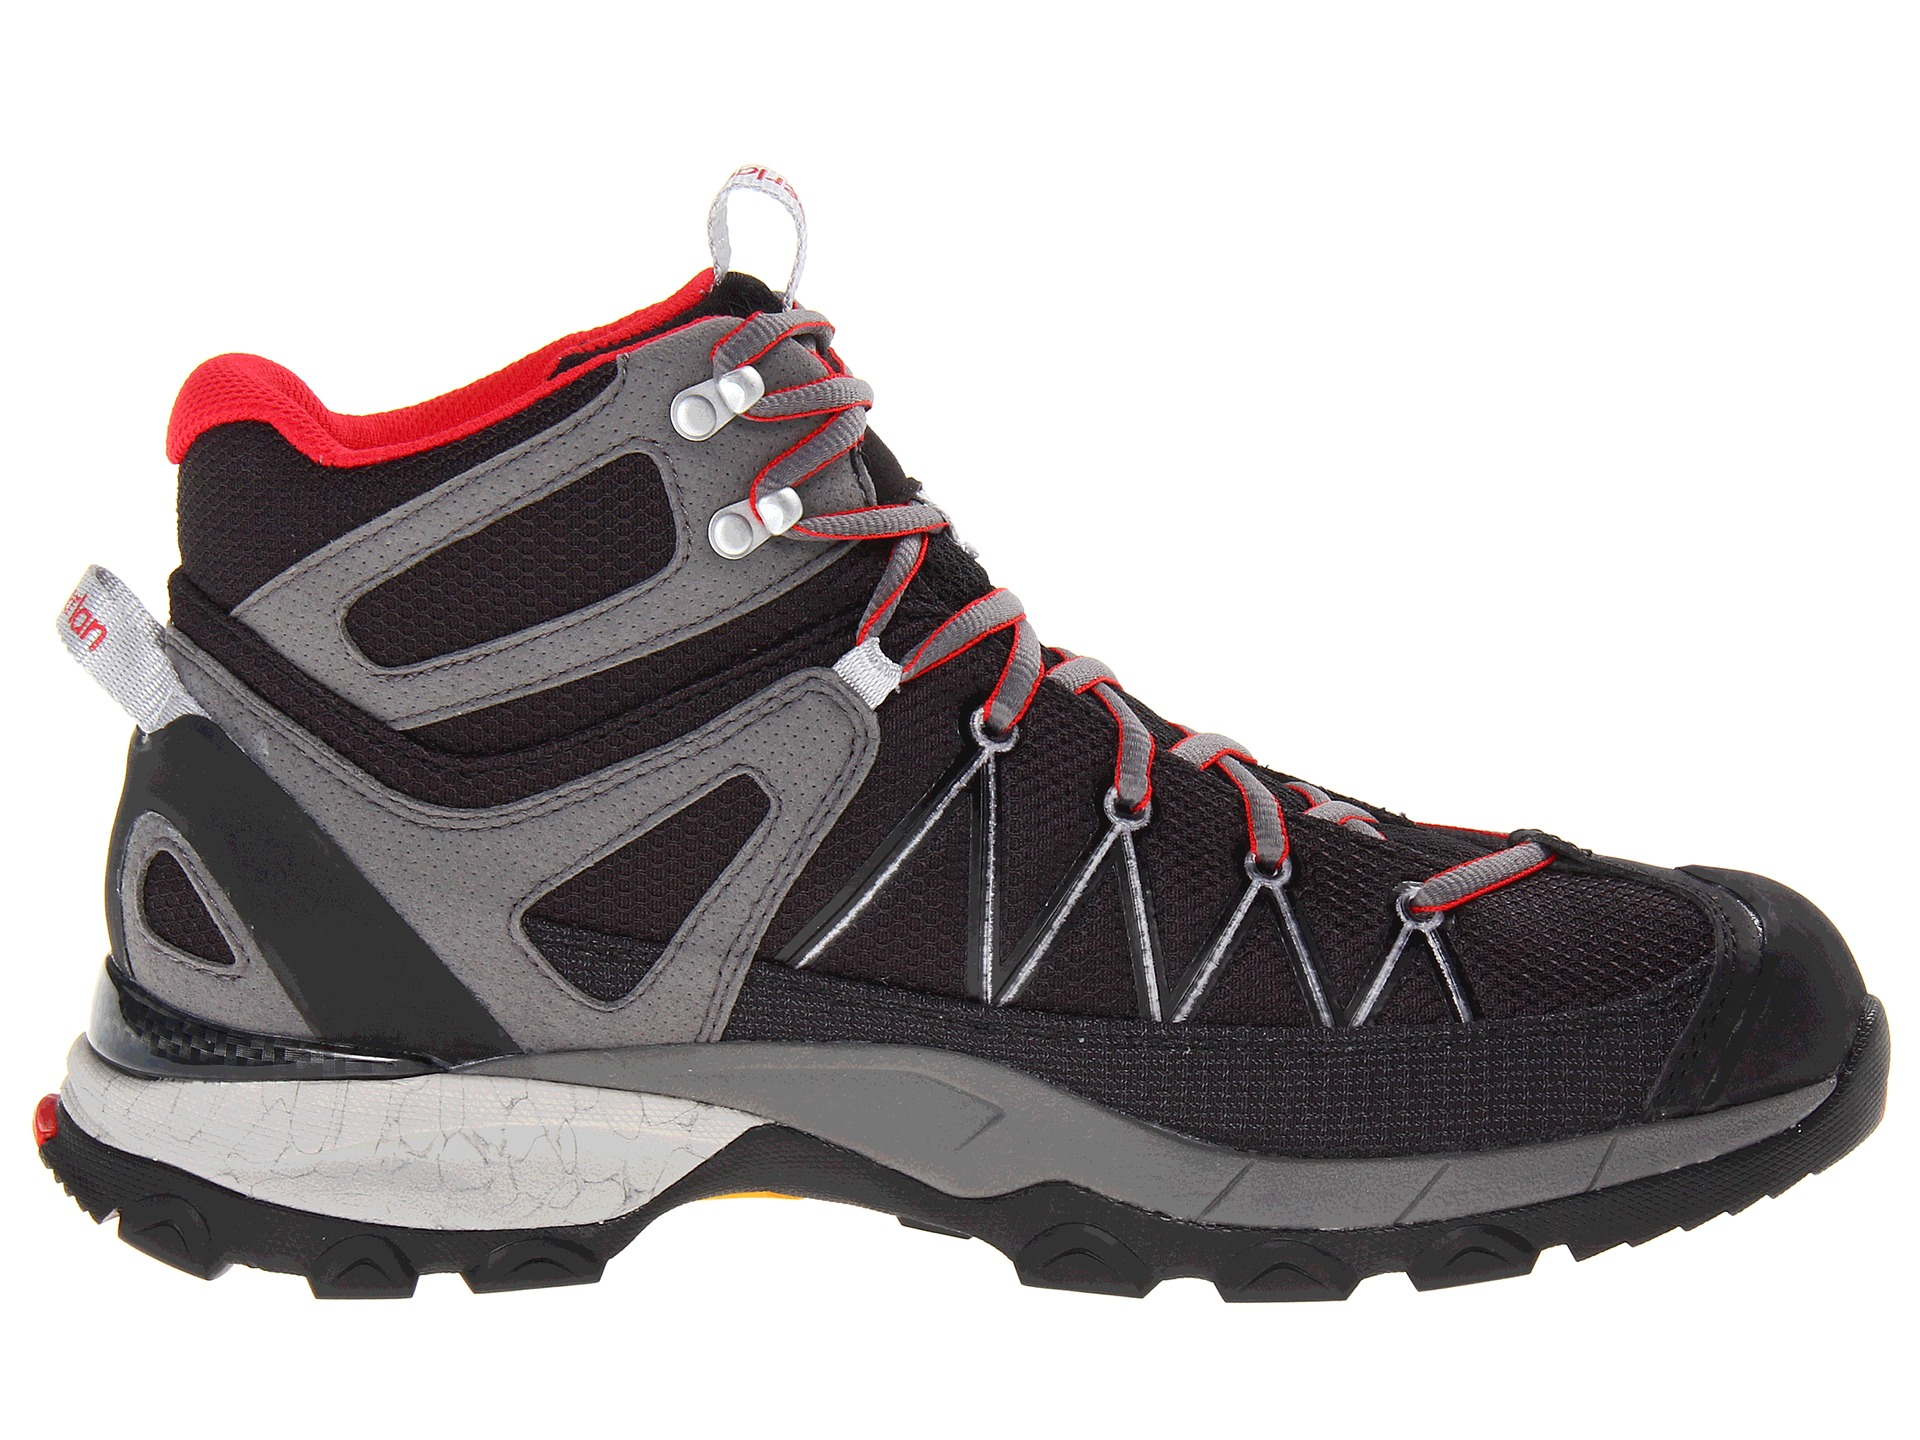 Waterproof Hiking Boots For Men Images